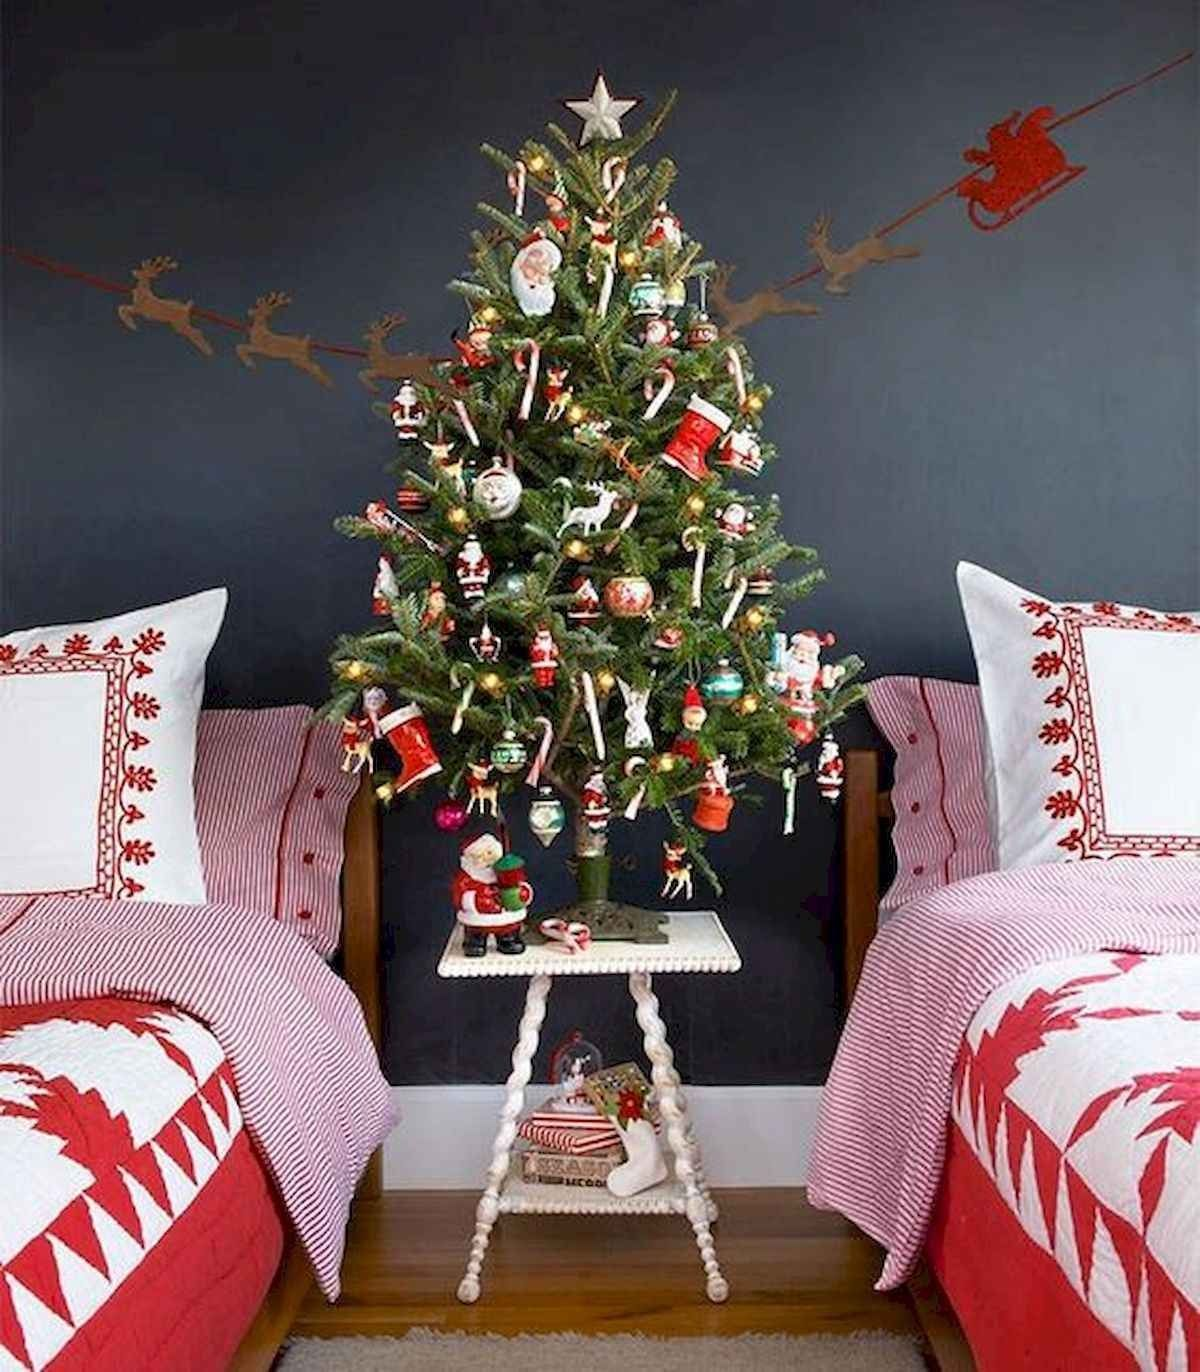 40 Awesome Bedroom Christmas Decor Ideas 17 Christmas Decorations Bedroom Christmas Kids Room Best Christmas Tree Decorations